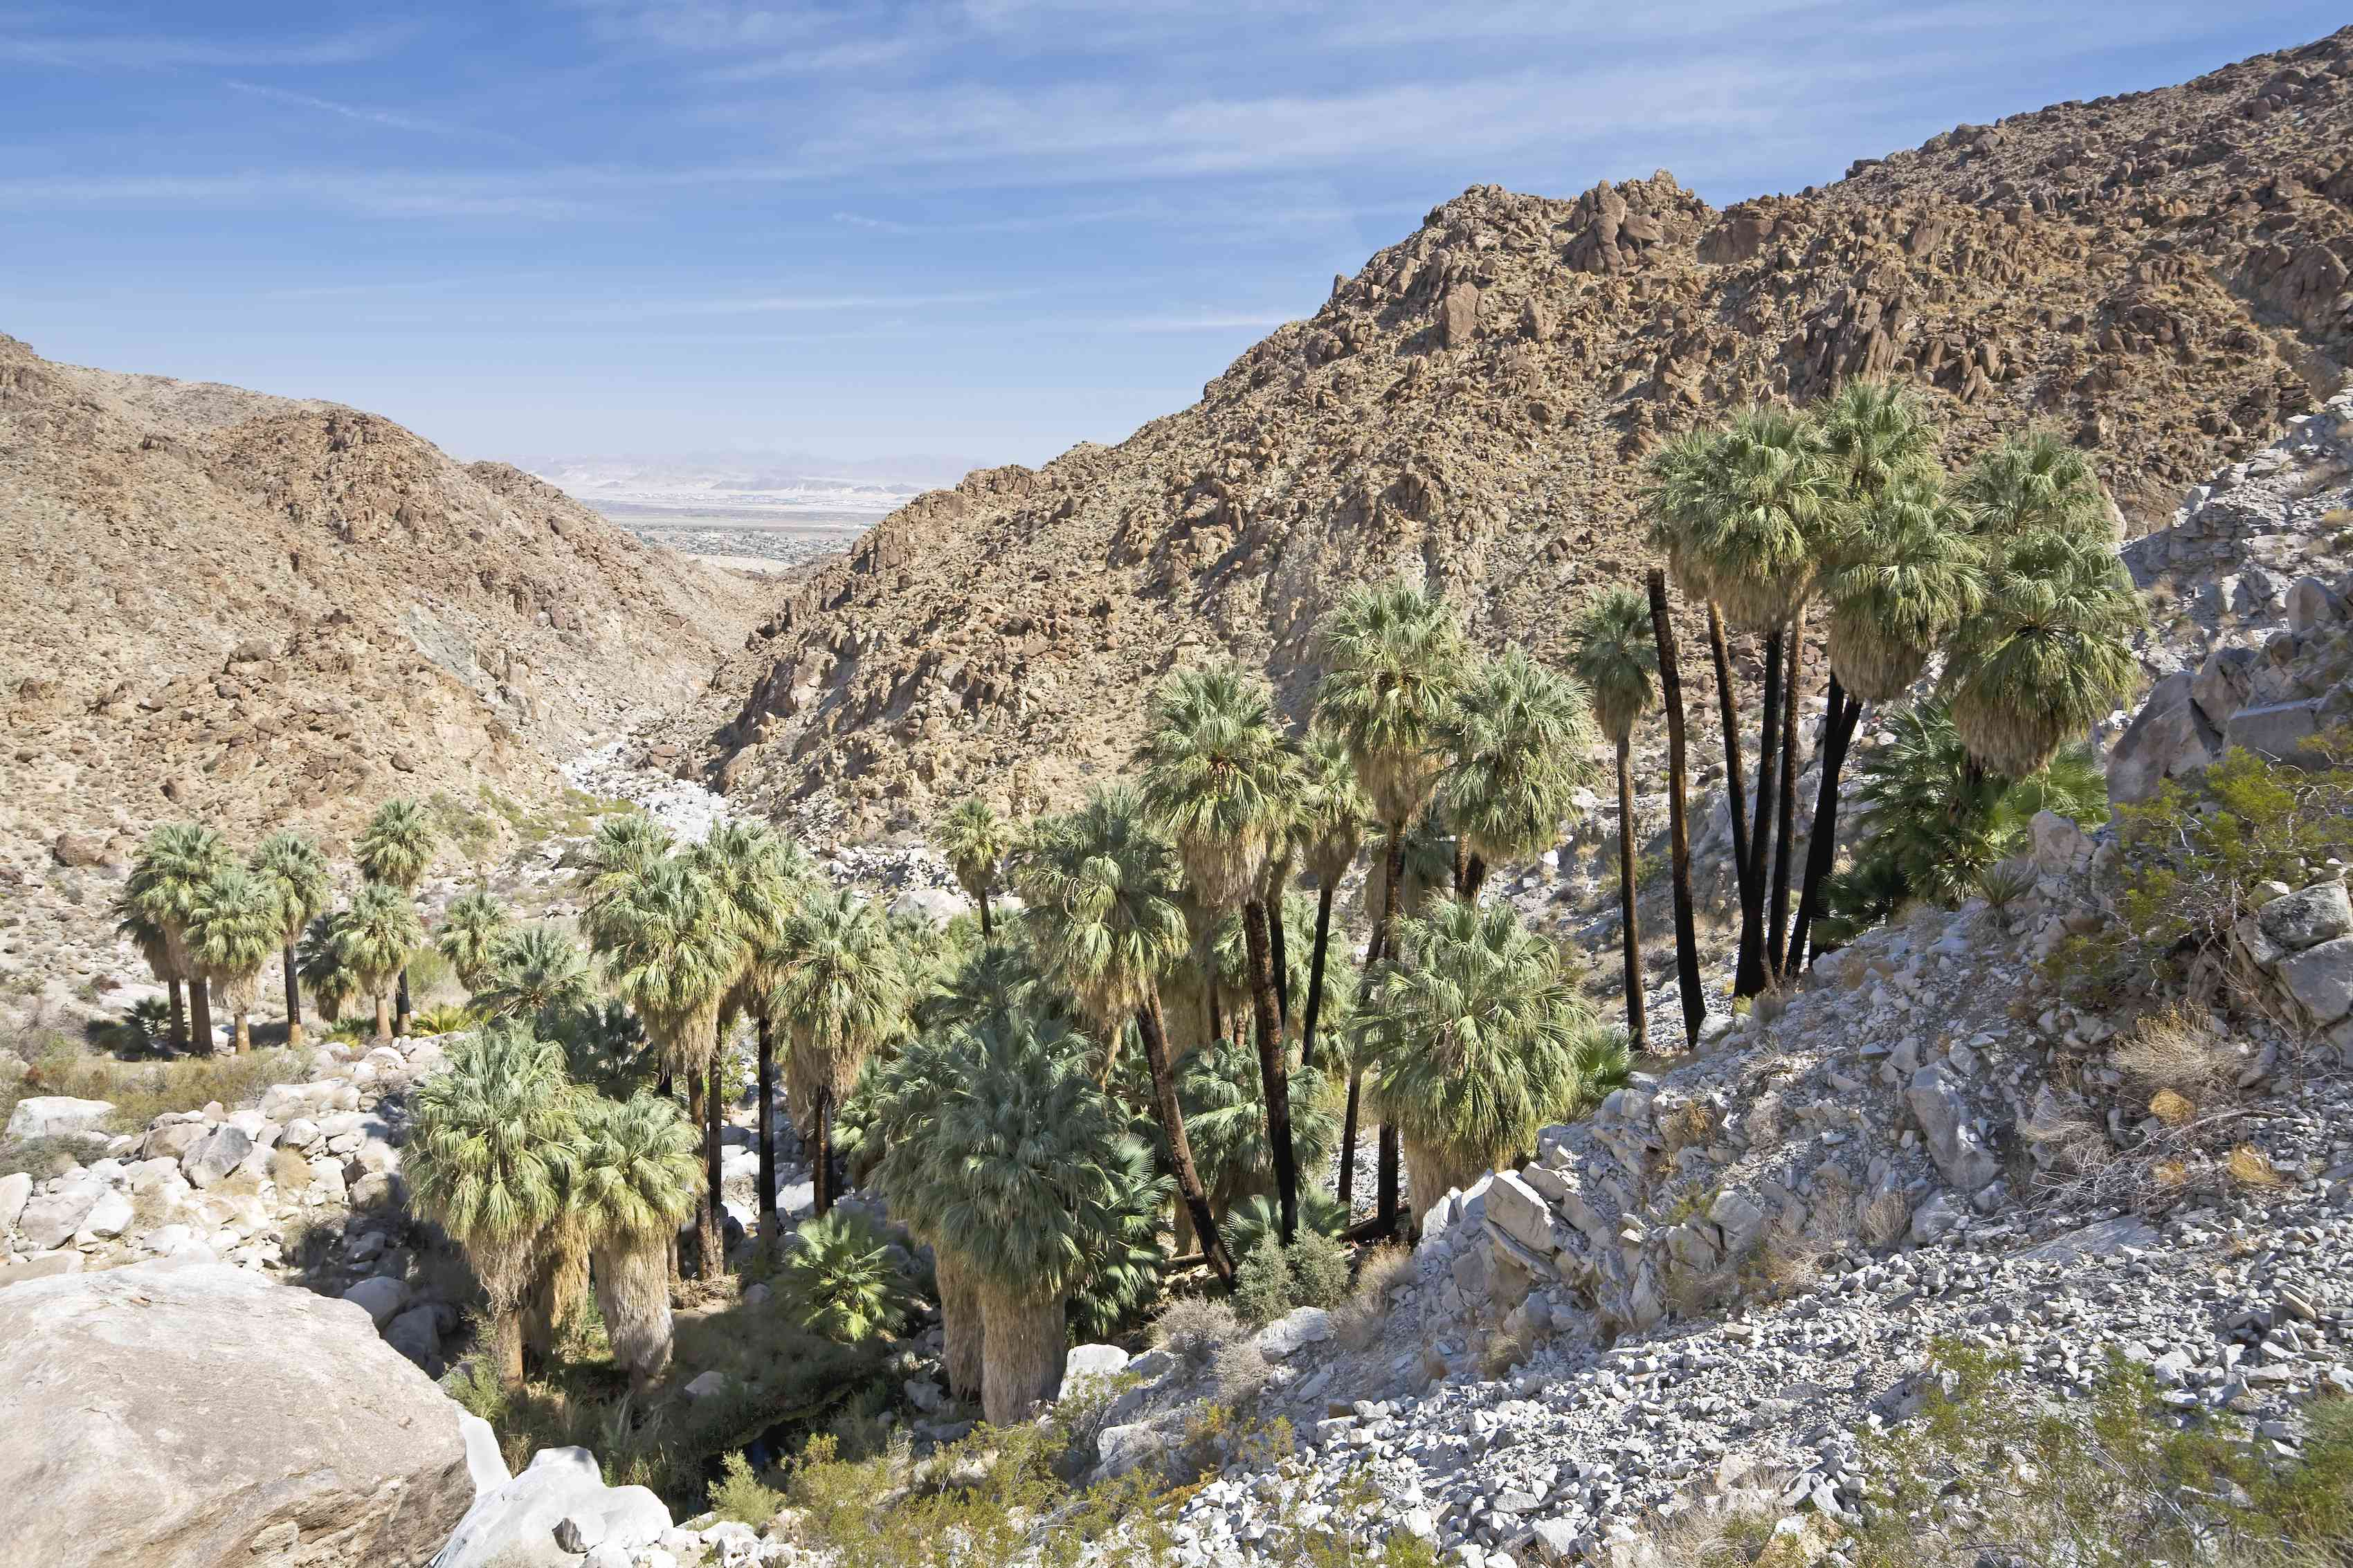 Fortynine Palms Oasis in JTNP